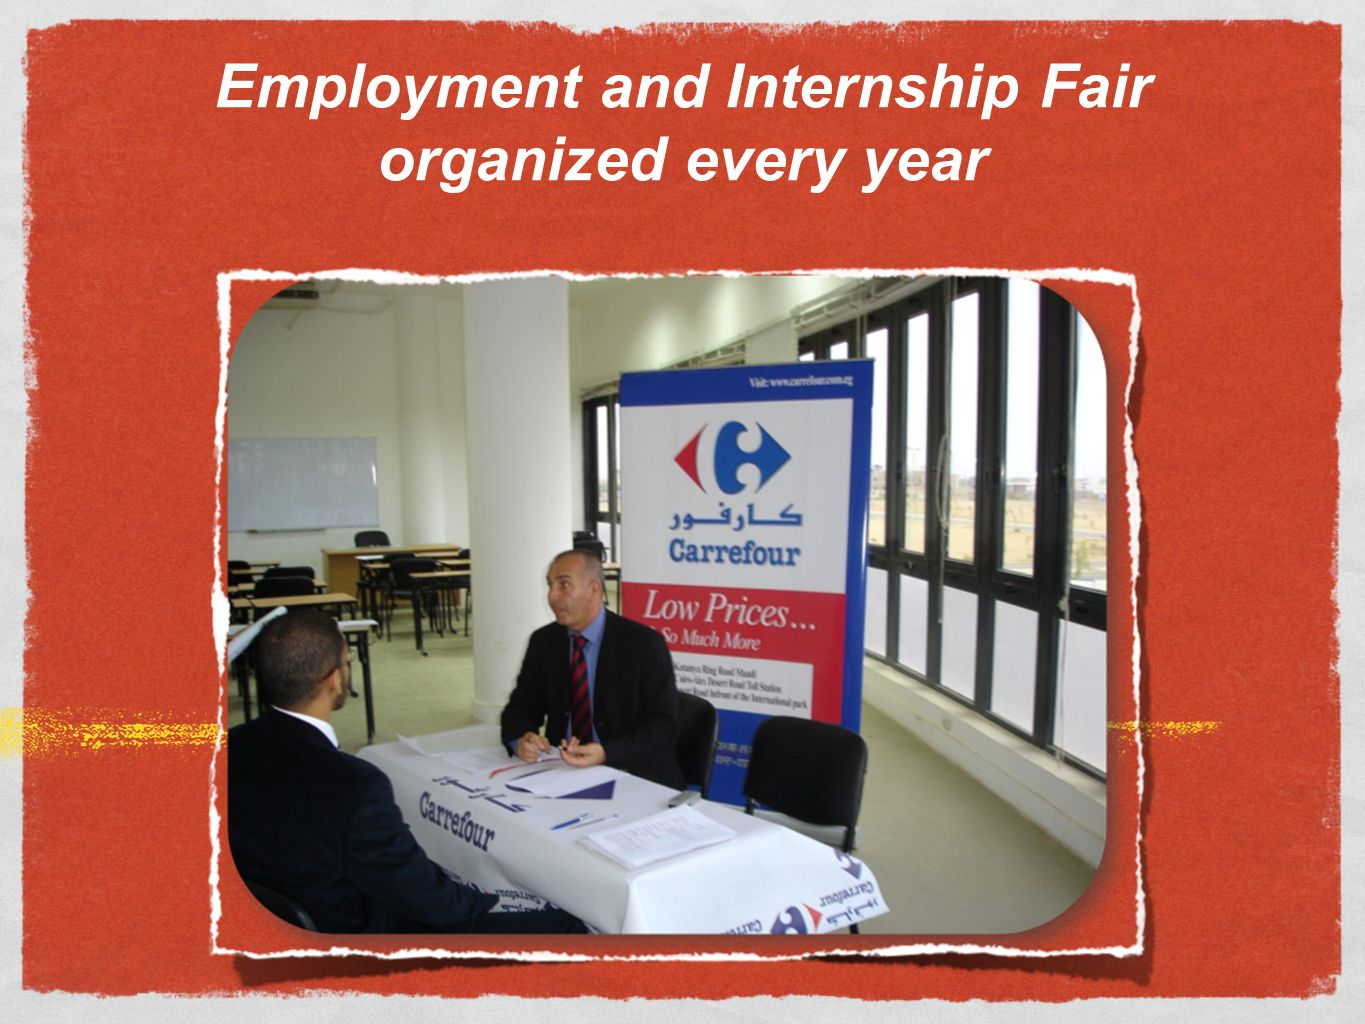 Employment and Internship Fair organized every year